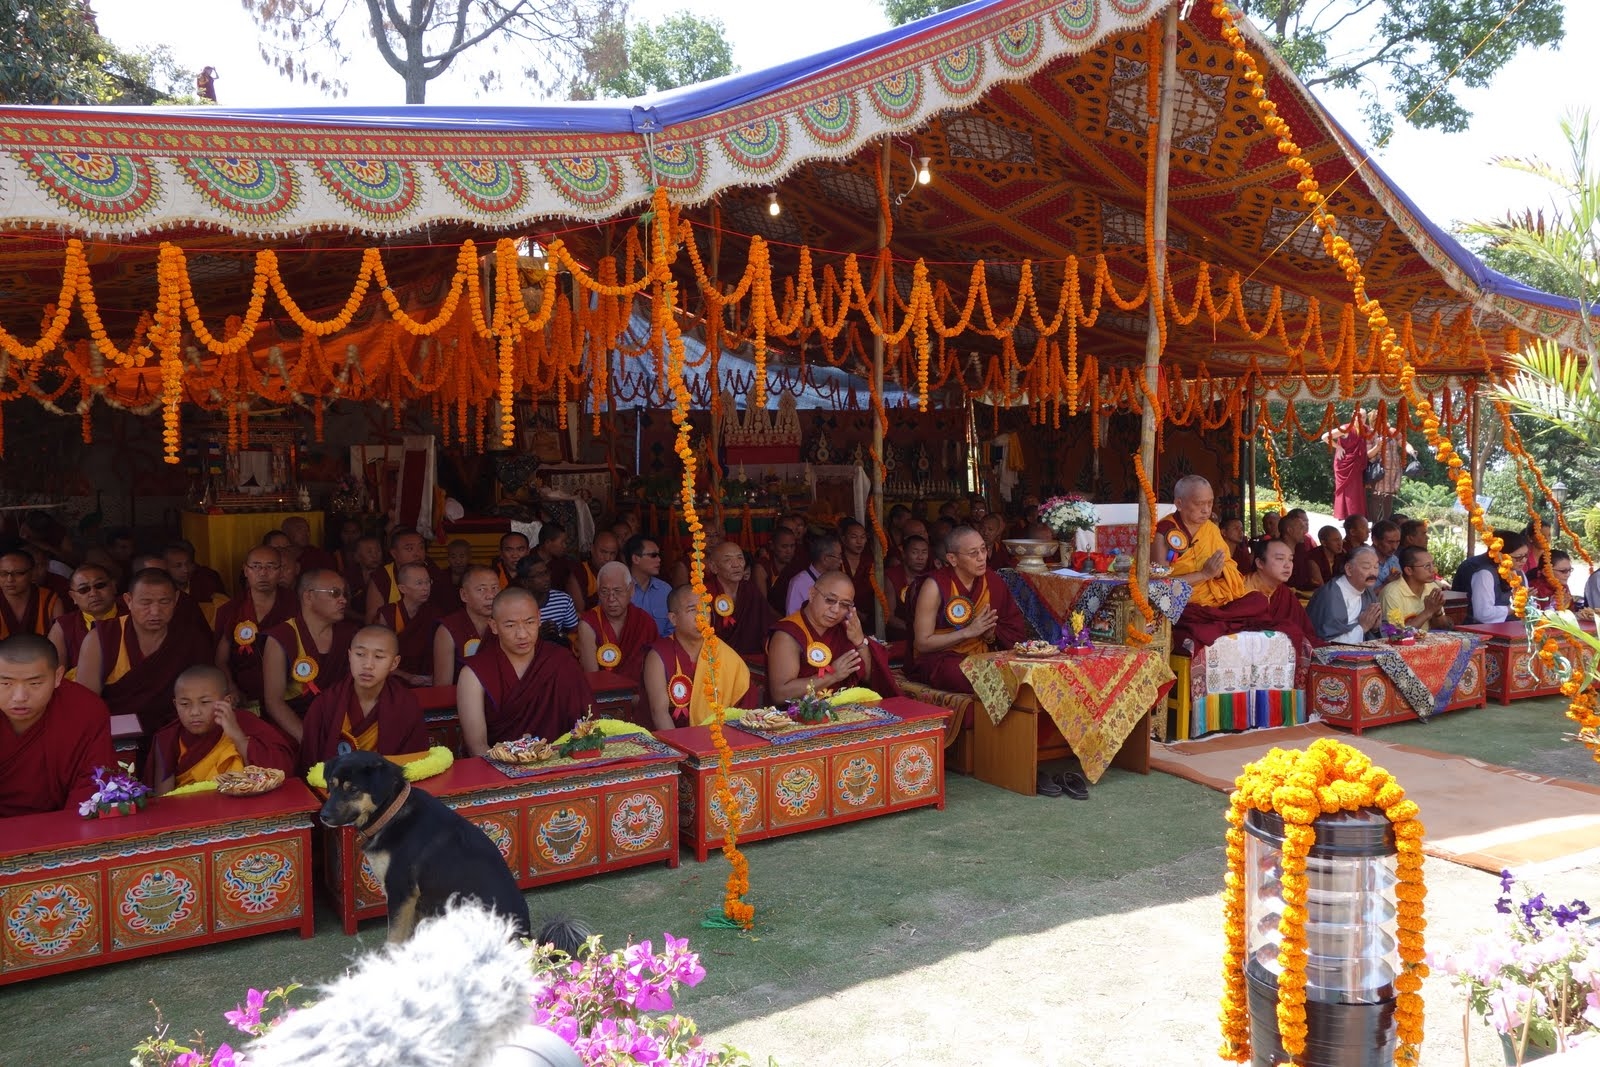 Khensur Lama Lhundrup's stupaconsecration at Kopan Monastery. May 3, 2013. Photo by Ven. Roger Kunsang